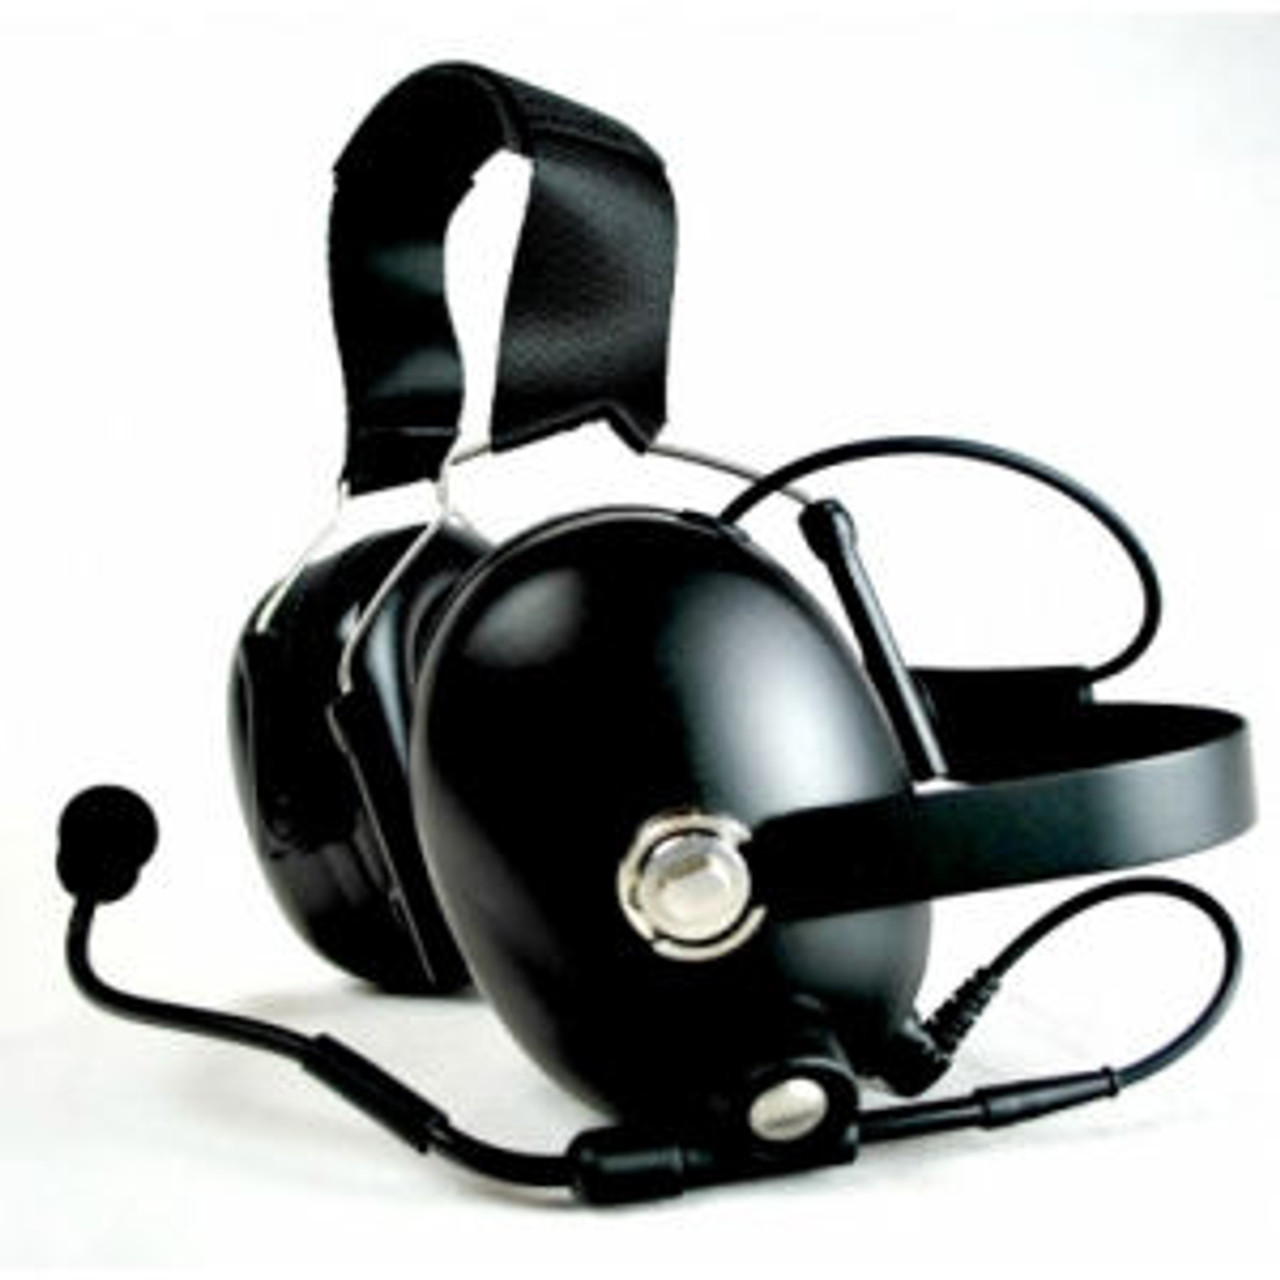 Bendix King LPX Noise Canceling Double Muff Behind The Head Headset